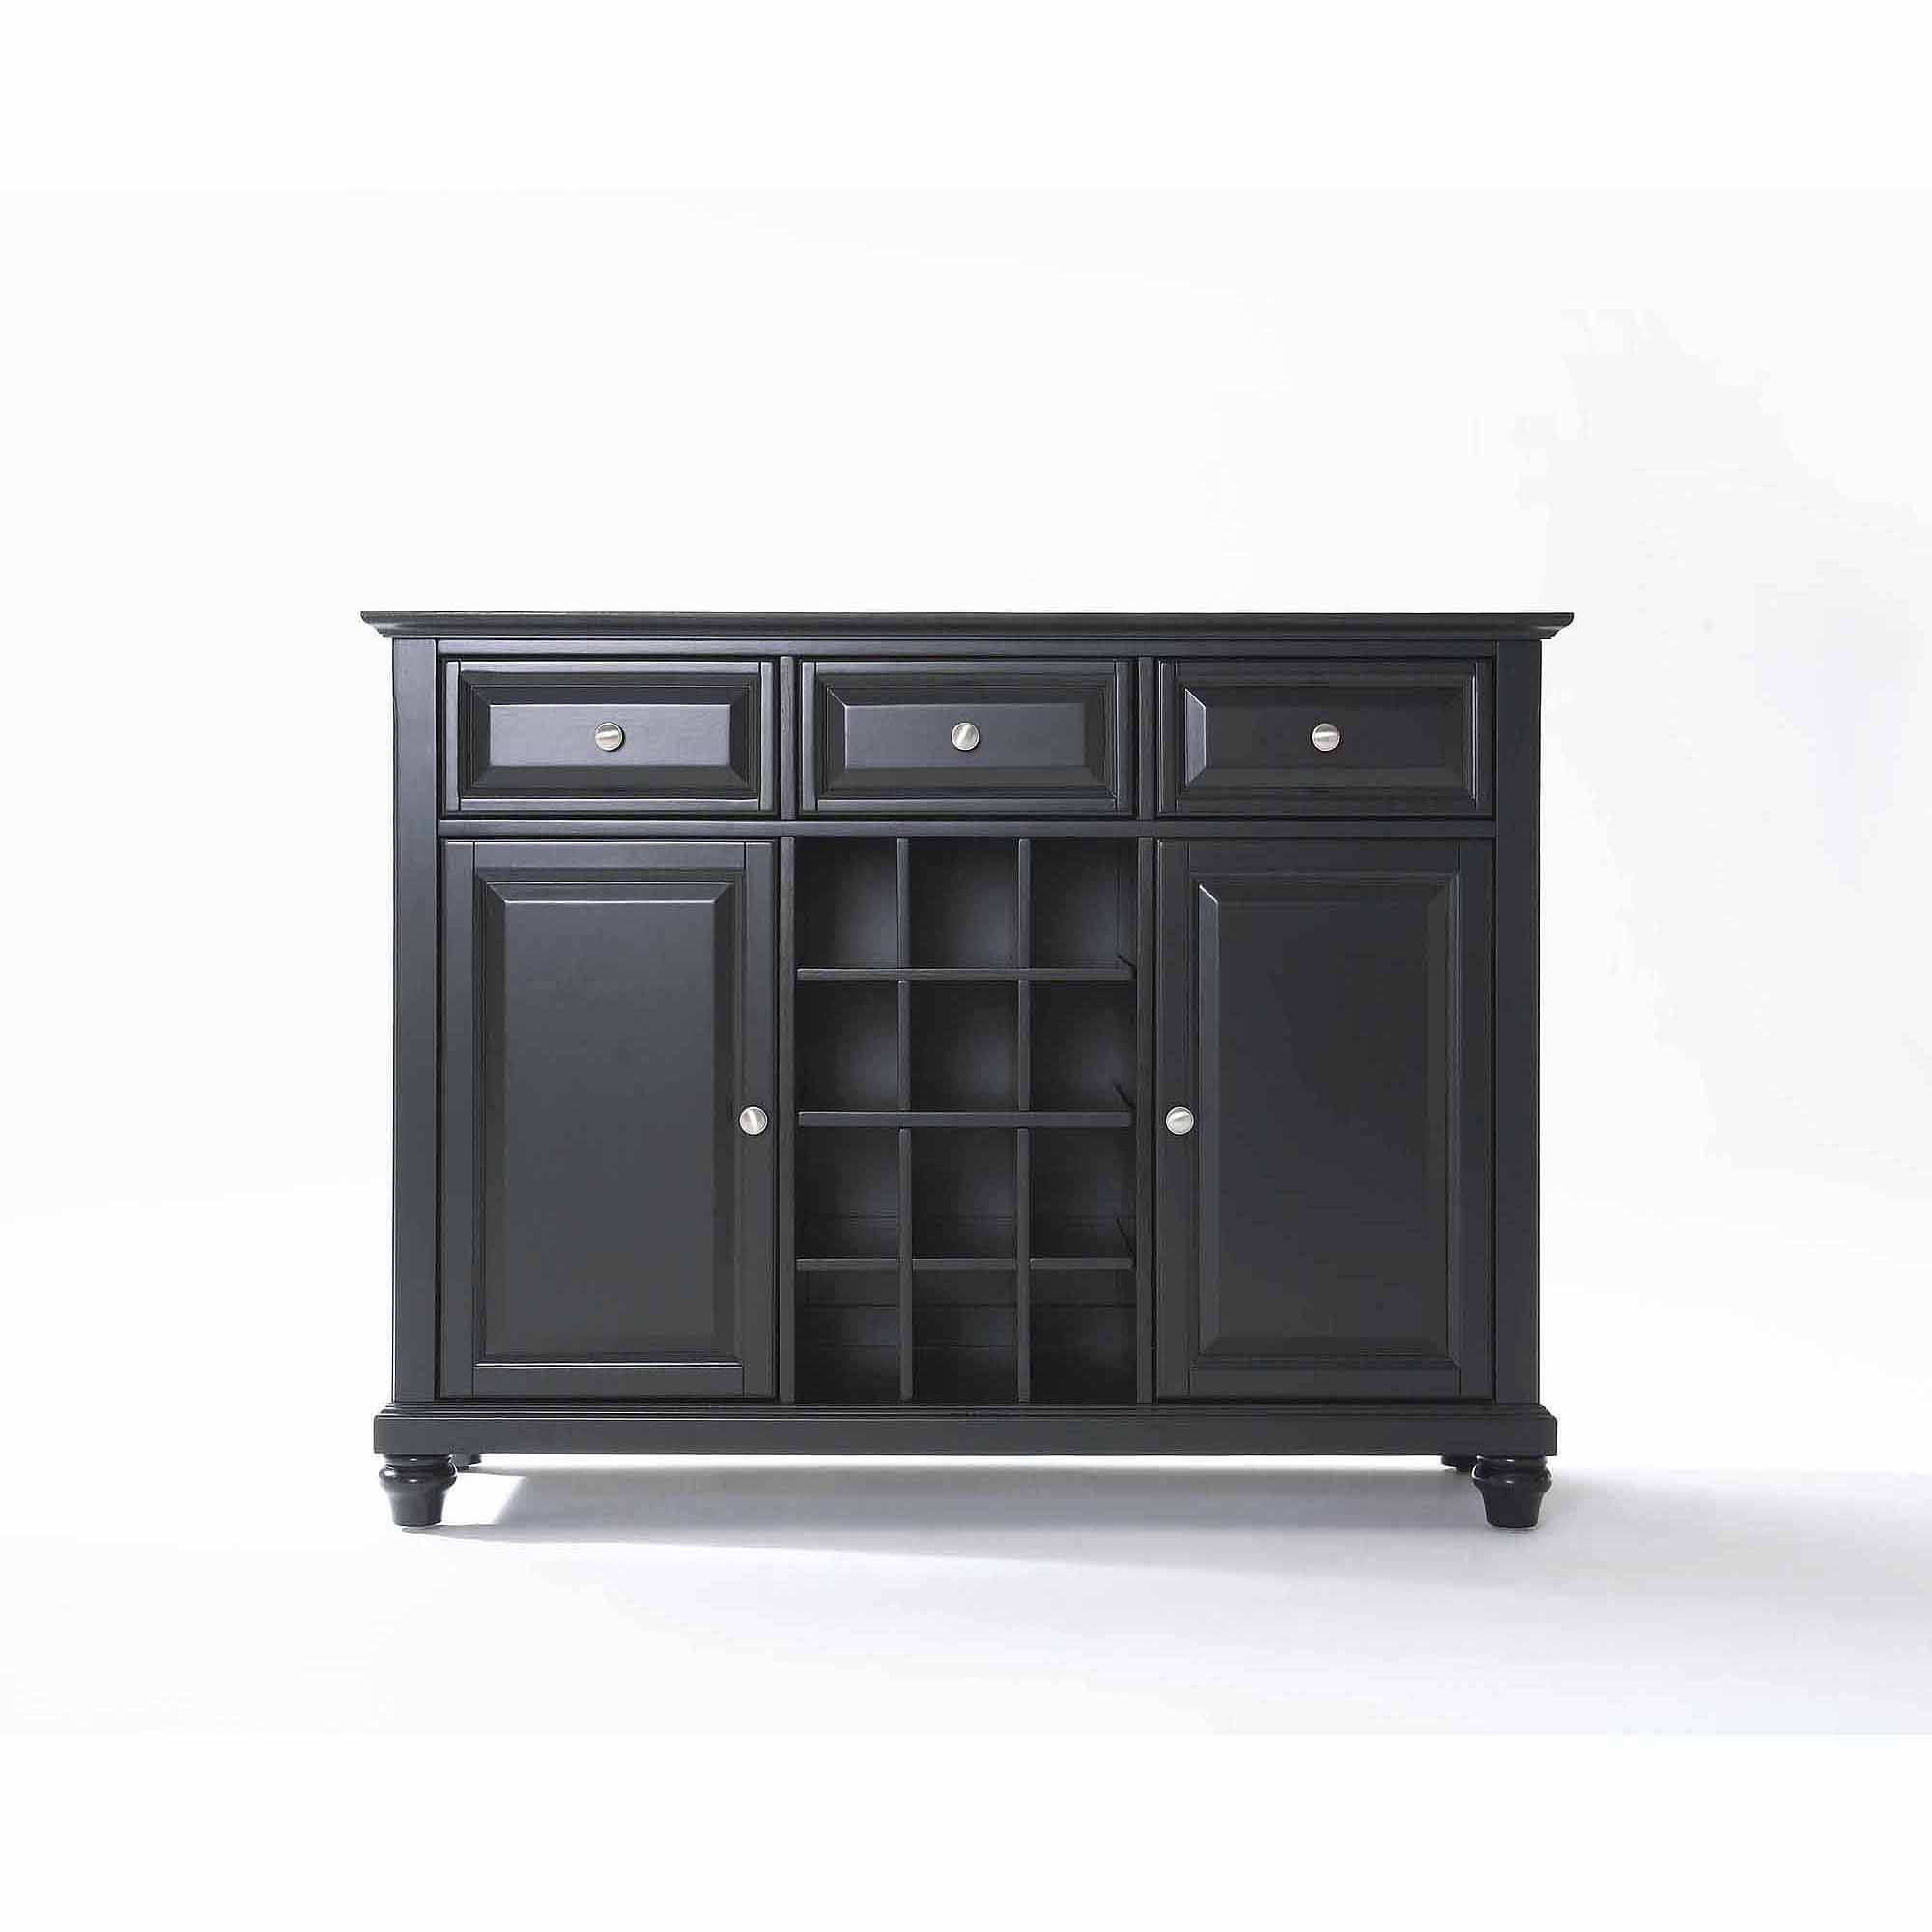 Crosley Furniture Cambridge Buffet Server And Sideboard Cabinet inside 50 Inch Sideboards (Image 9 of 15)